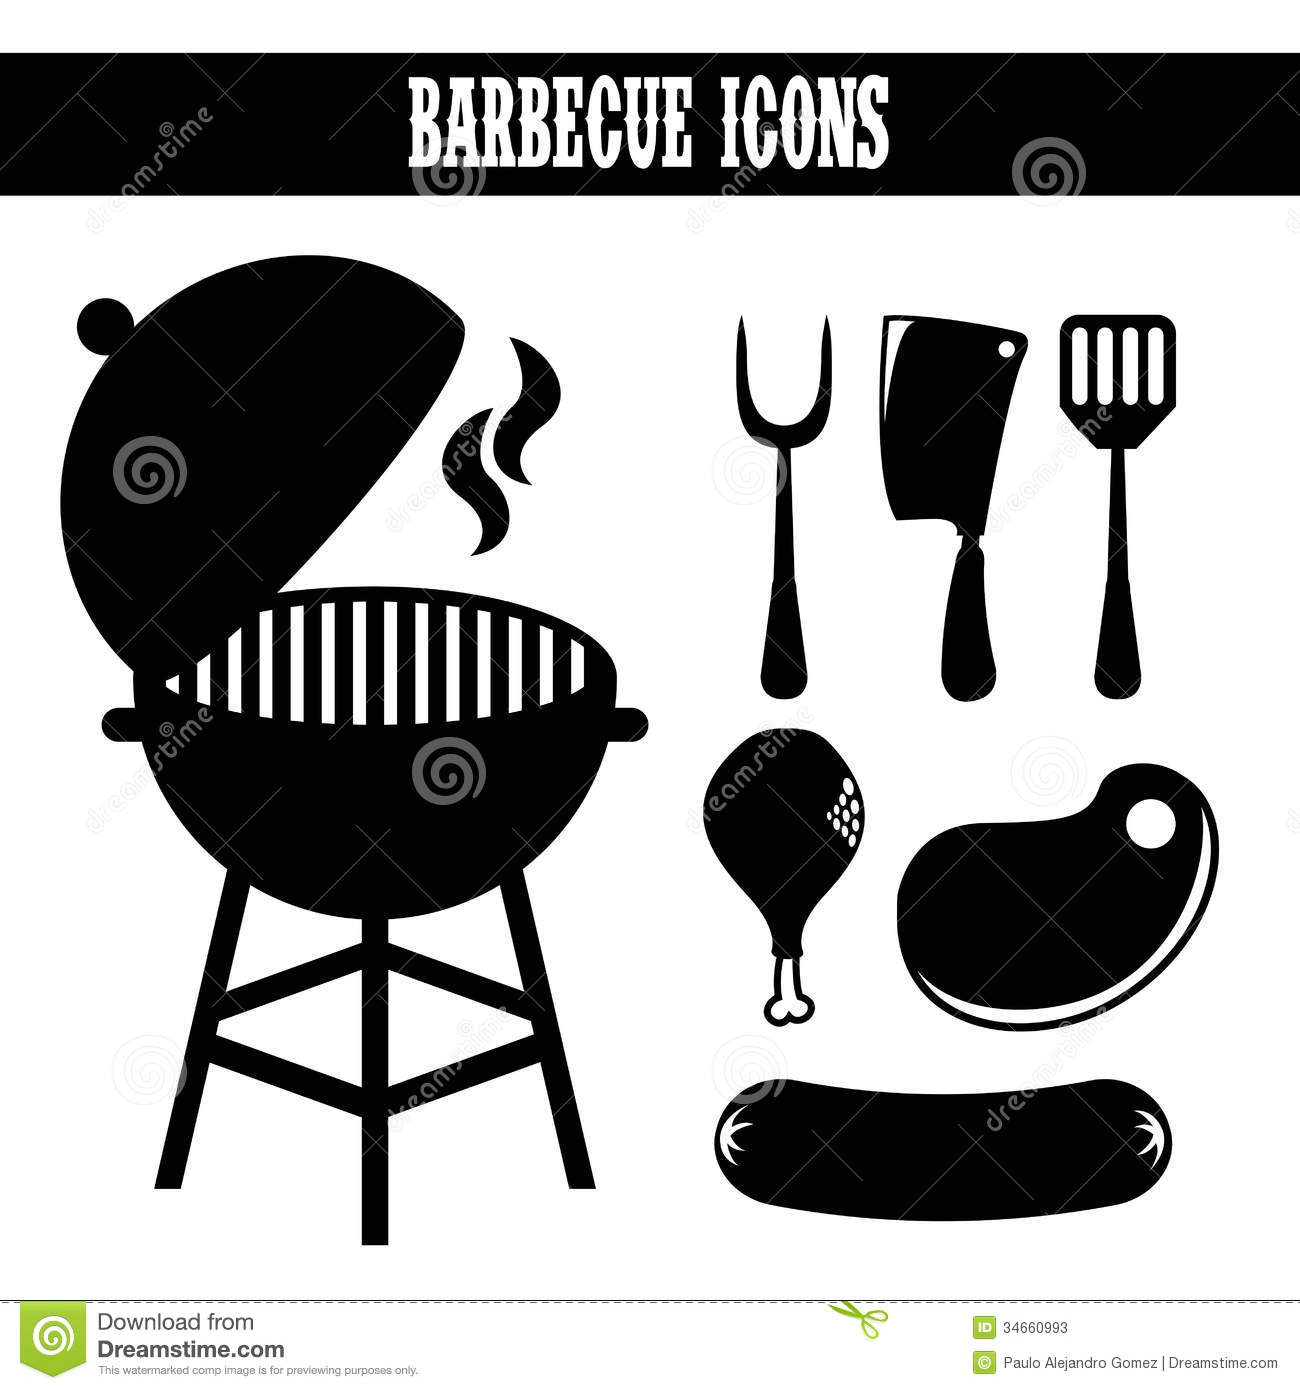 bbq silhouette clipart clipart suggest